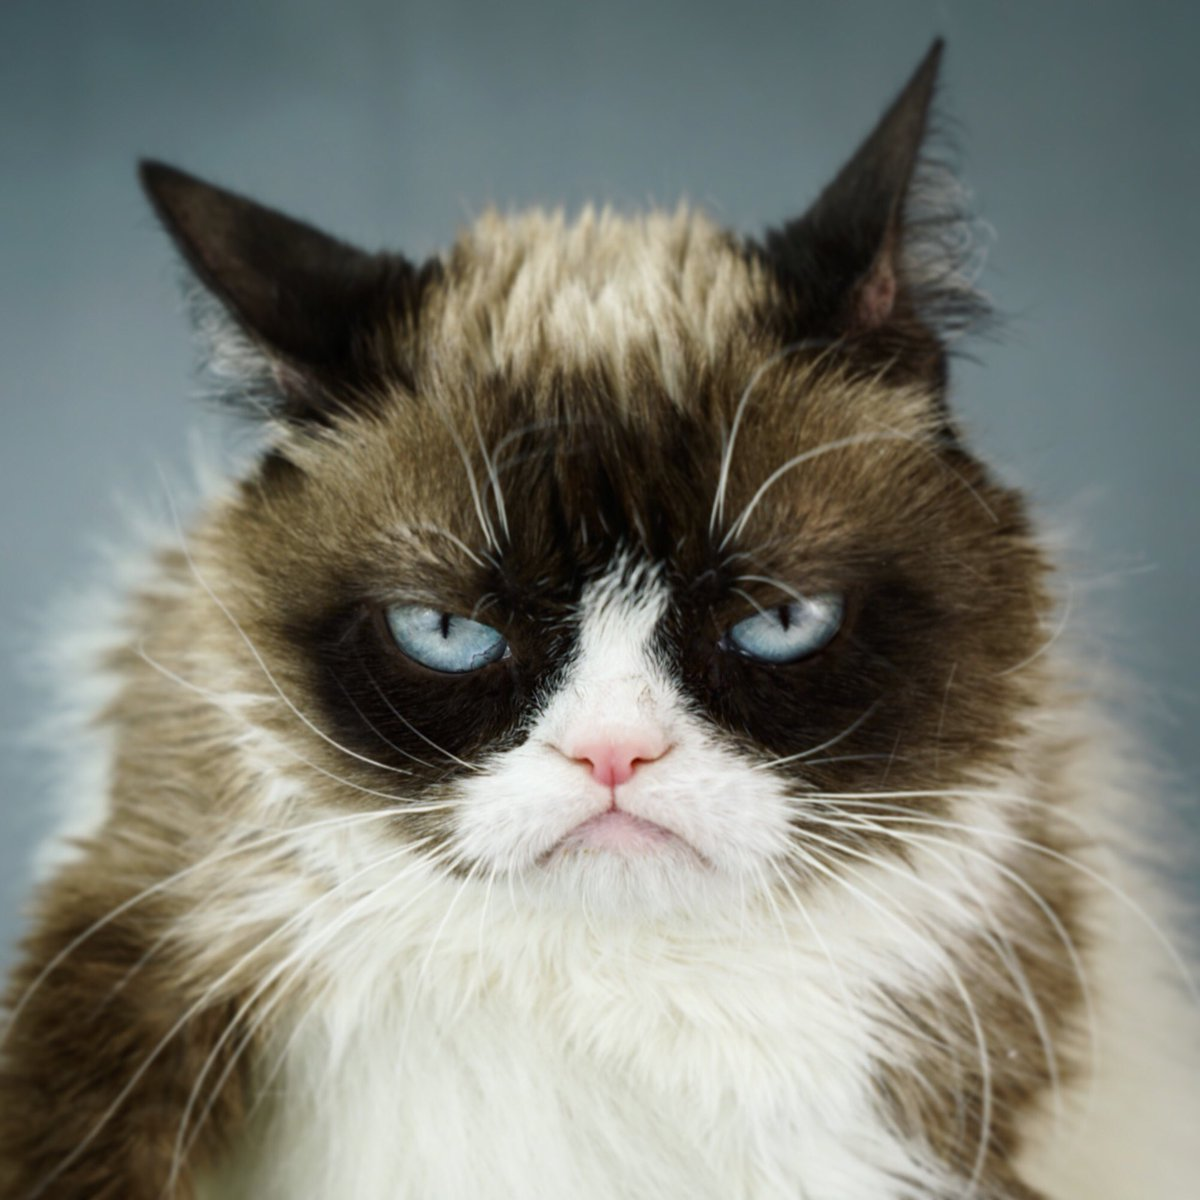 Where Can I Get A Grumpy Cat